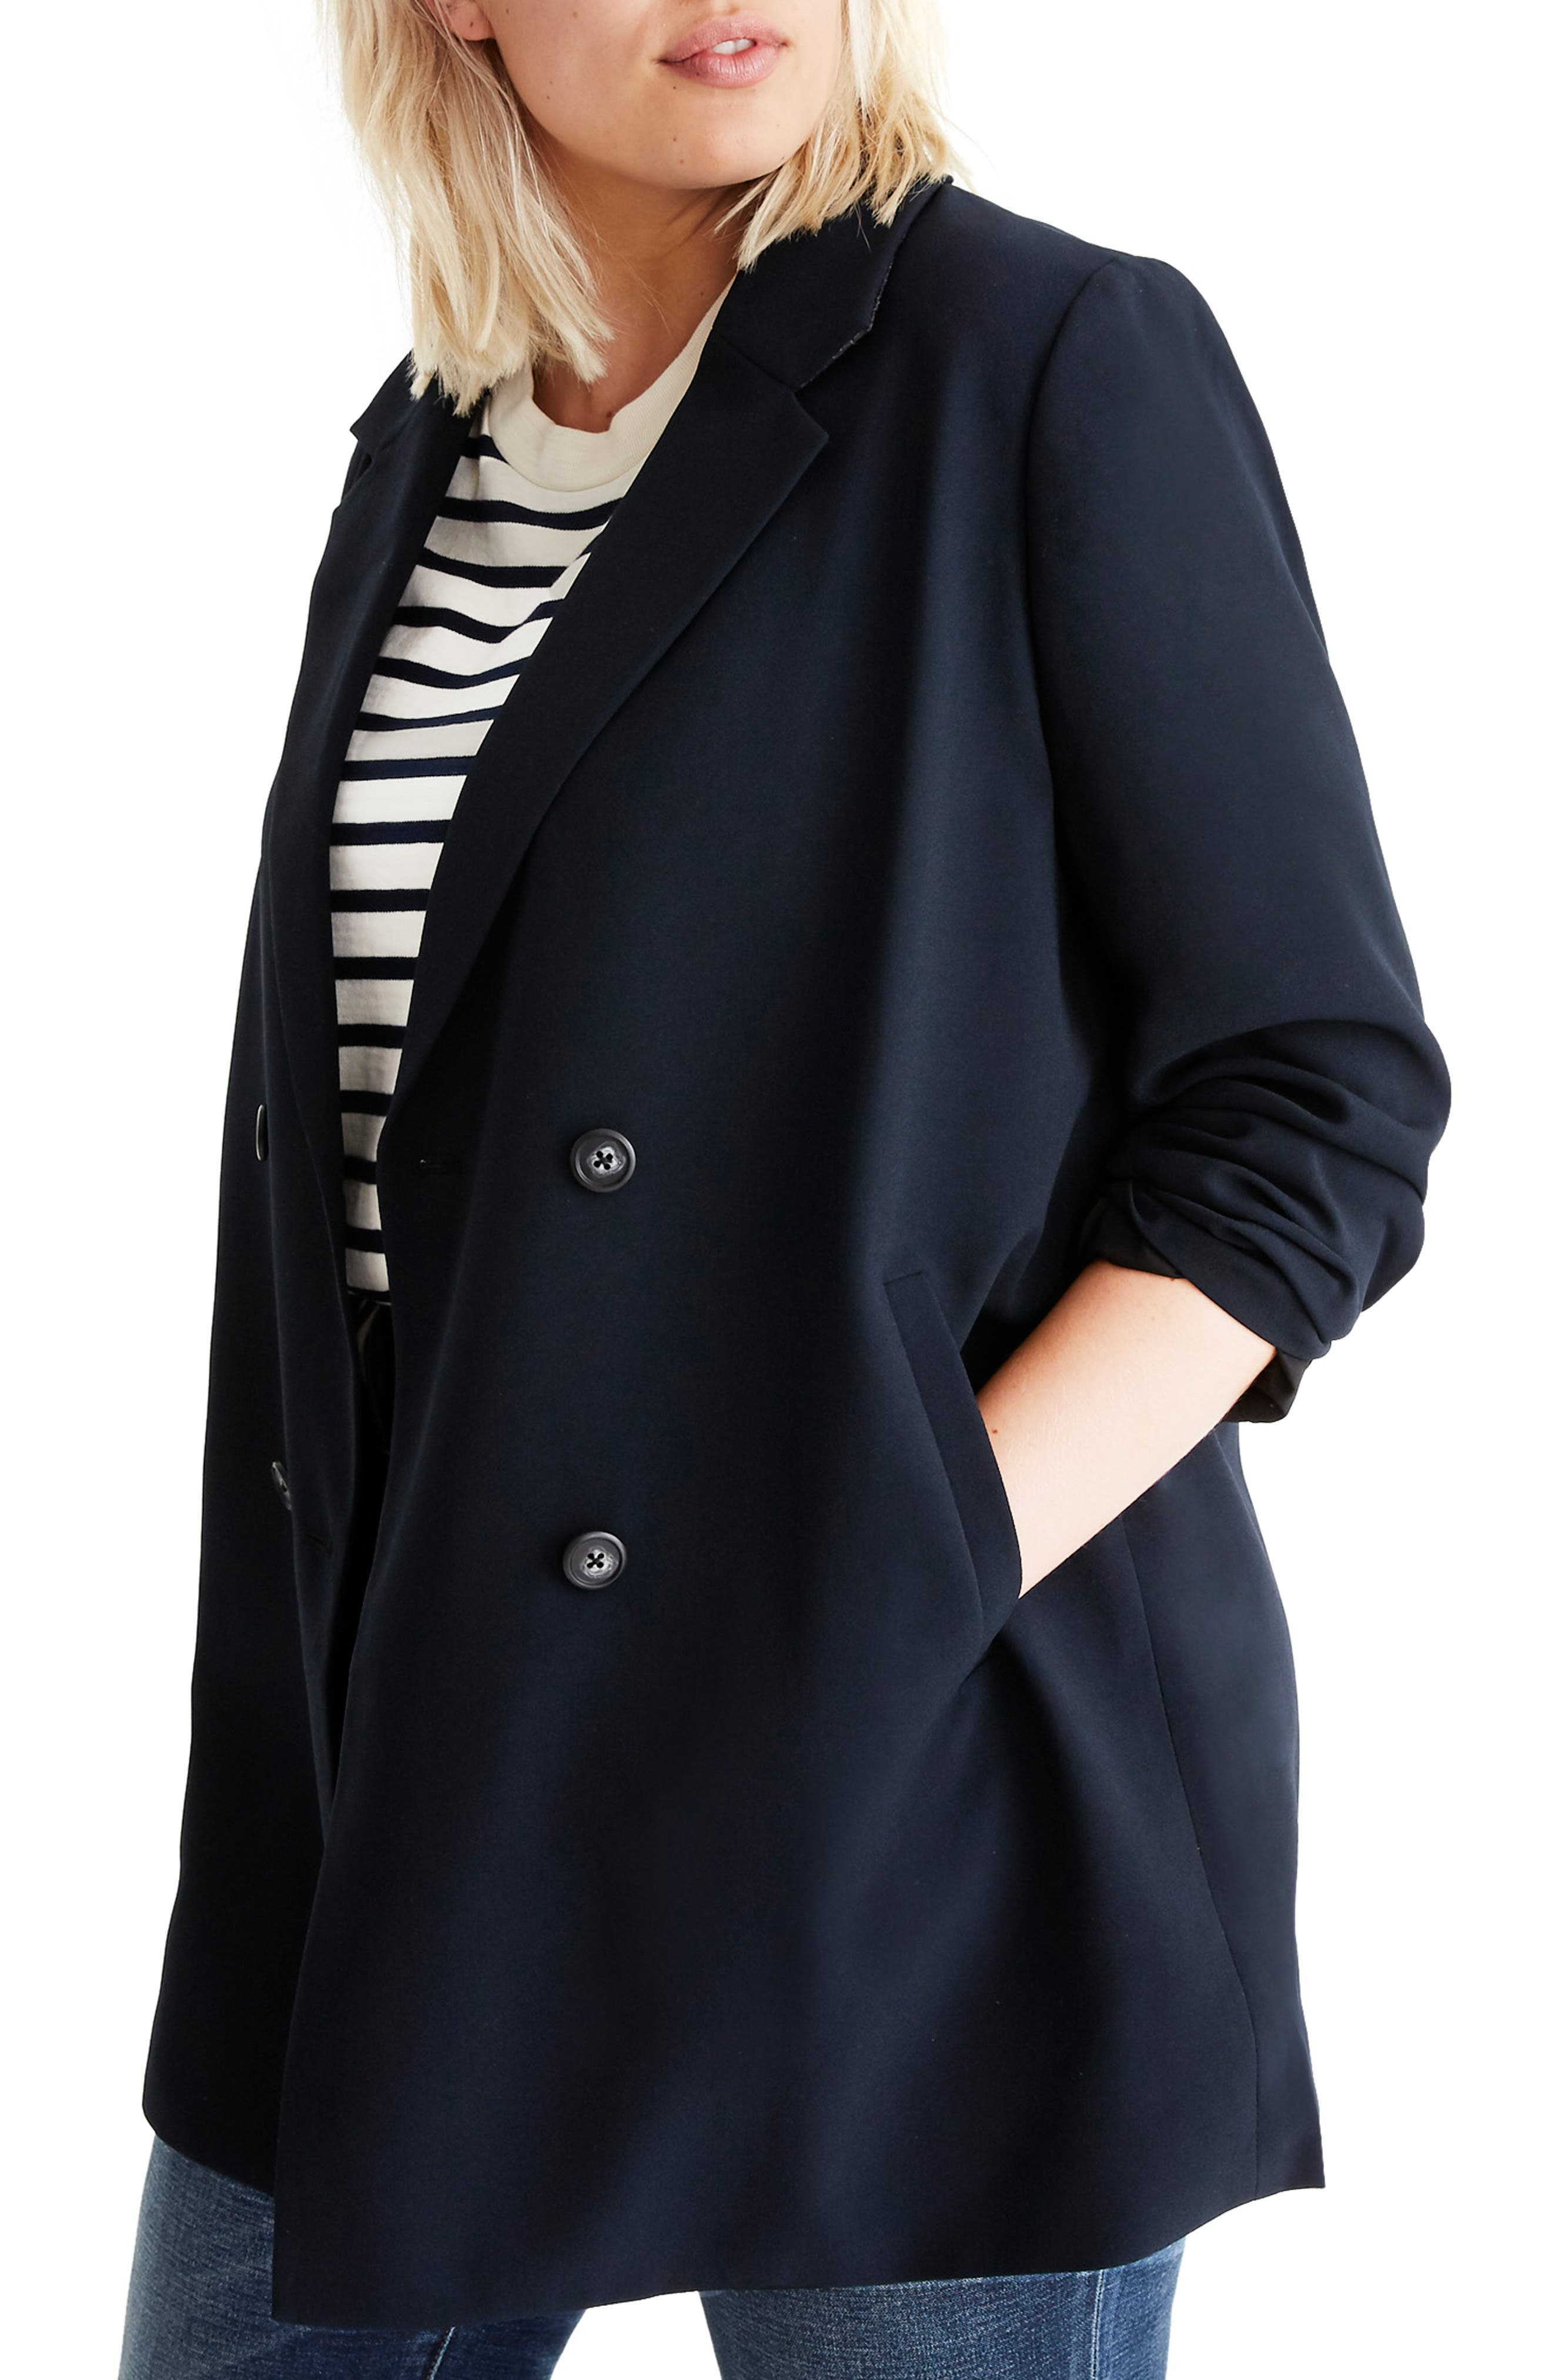 Caldwell Double Breasted Blazer,                             Alternate thumbnail 2, color,                             TRUE BLACK